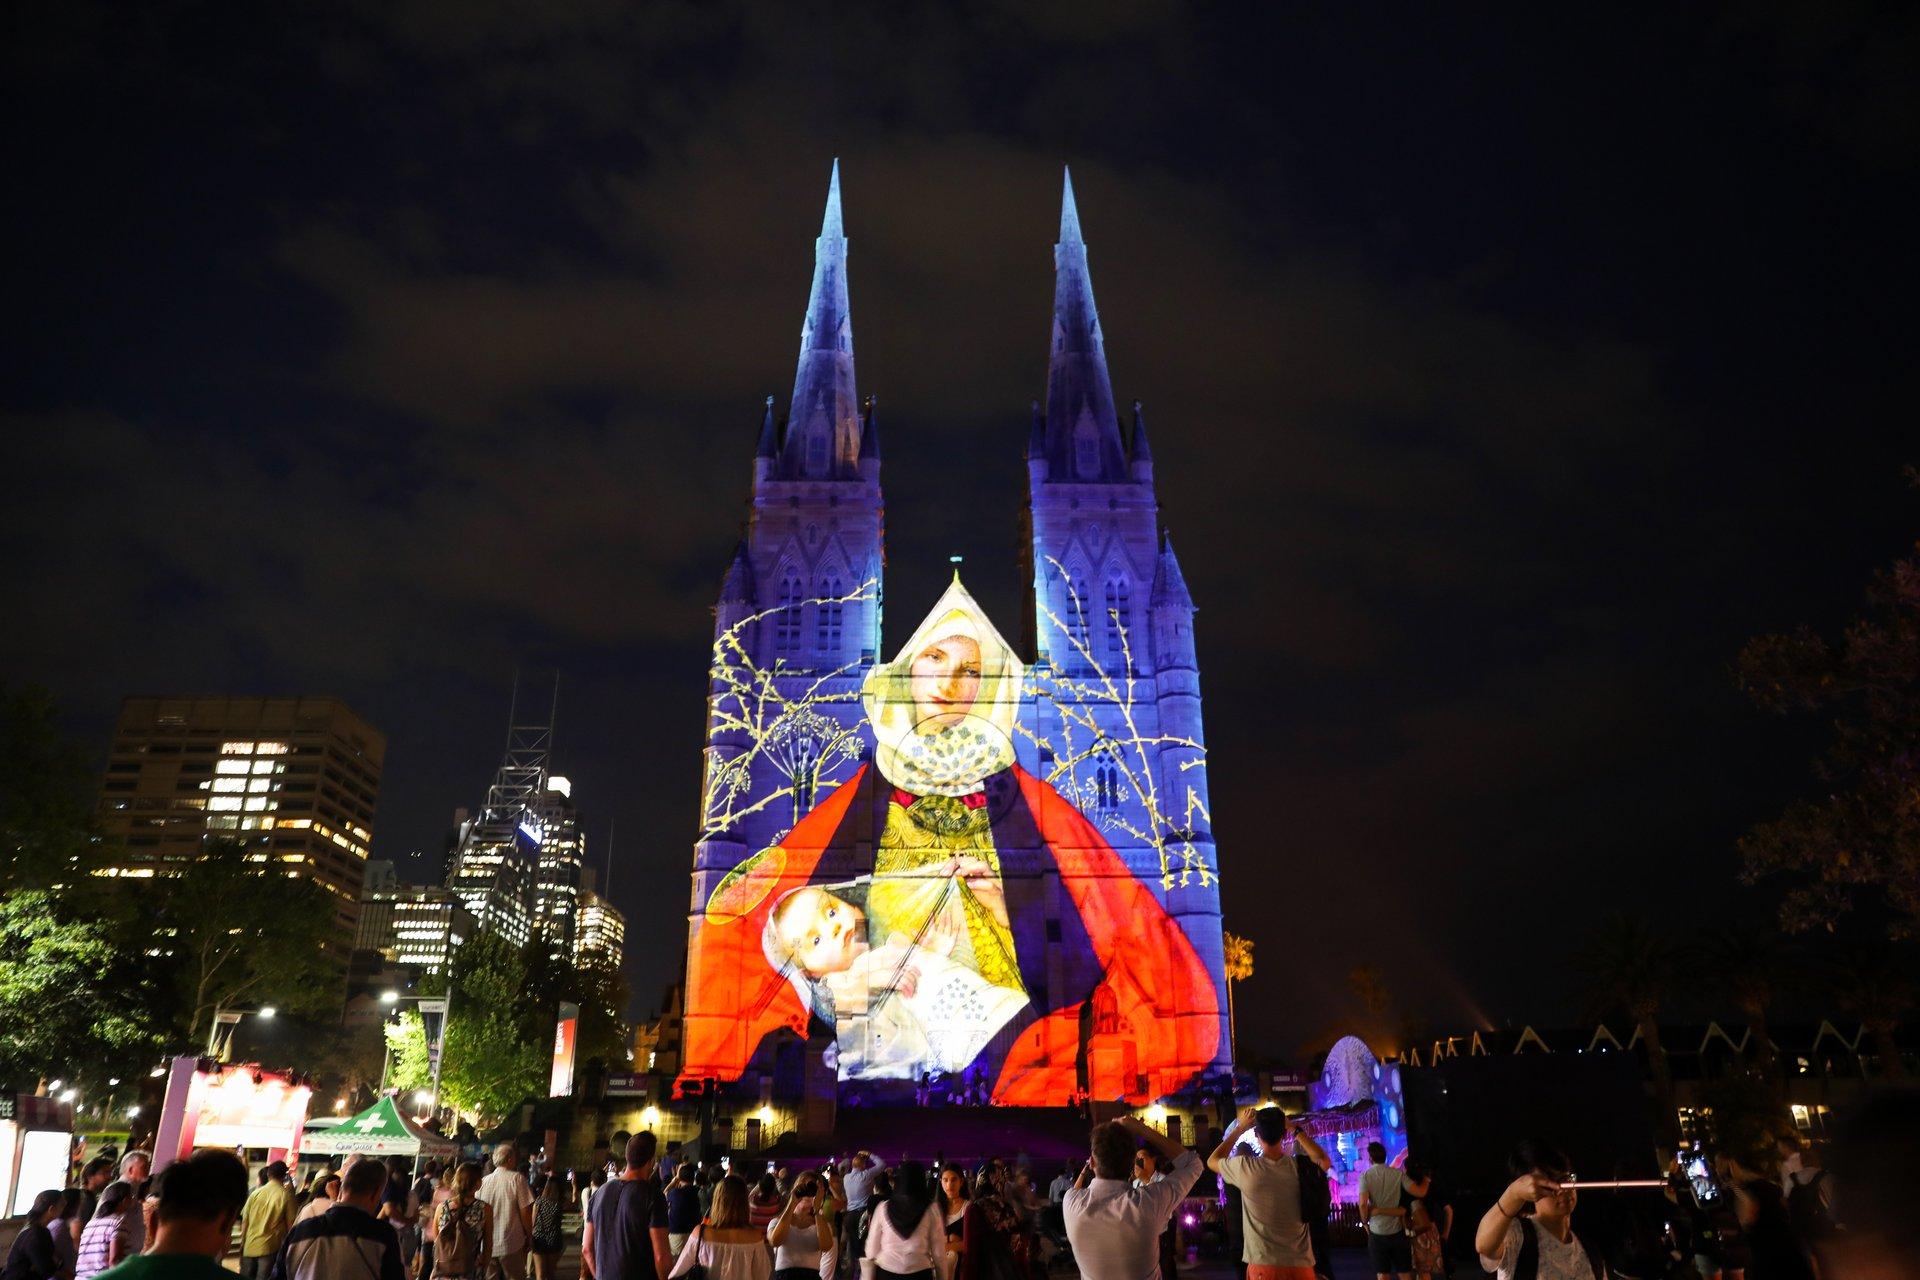 St Mary's Christmas projections 2019